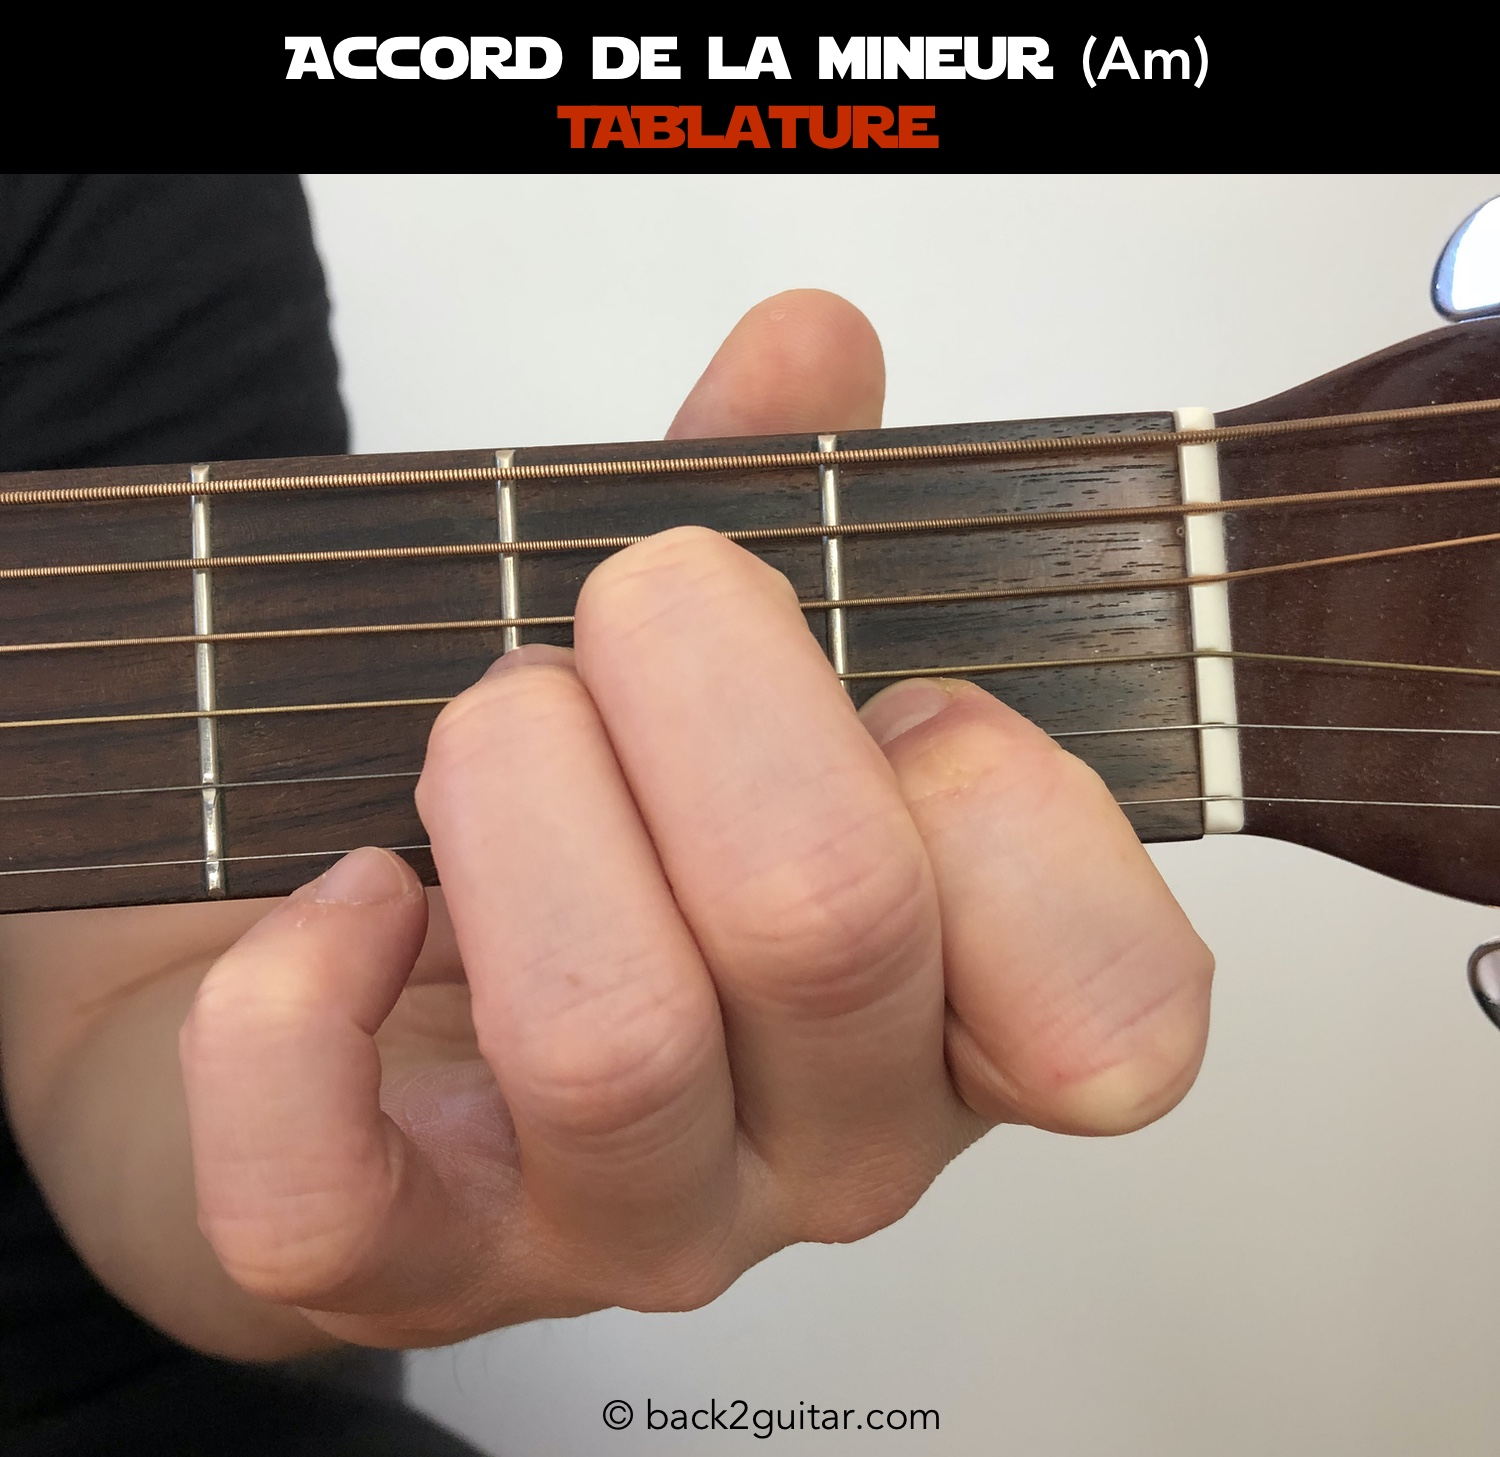 accord guitare la mineur photo (Am)